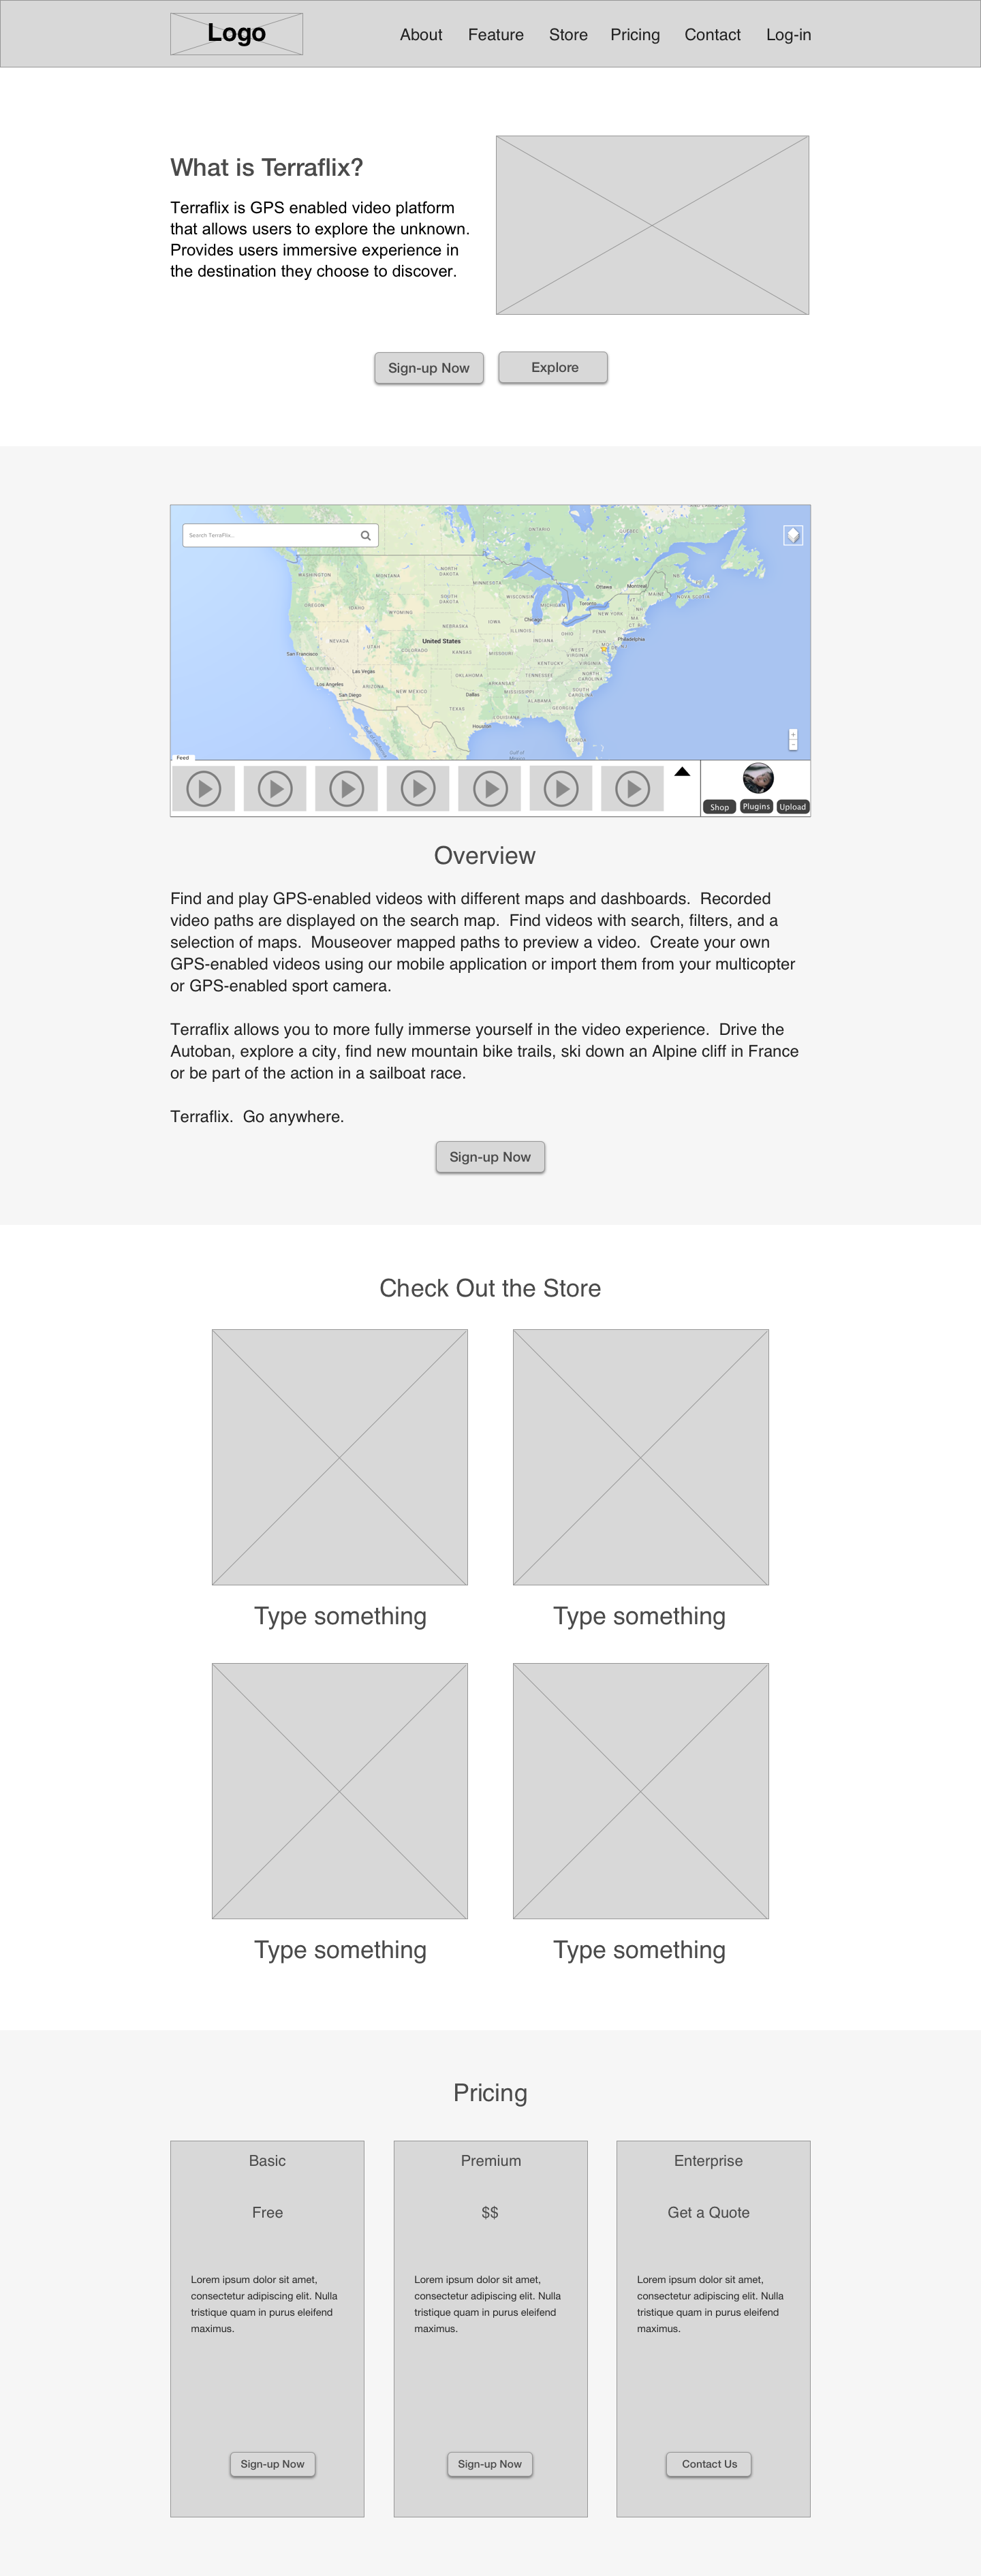 First Iteration of Landing page